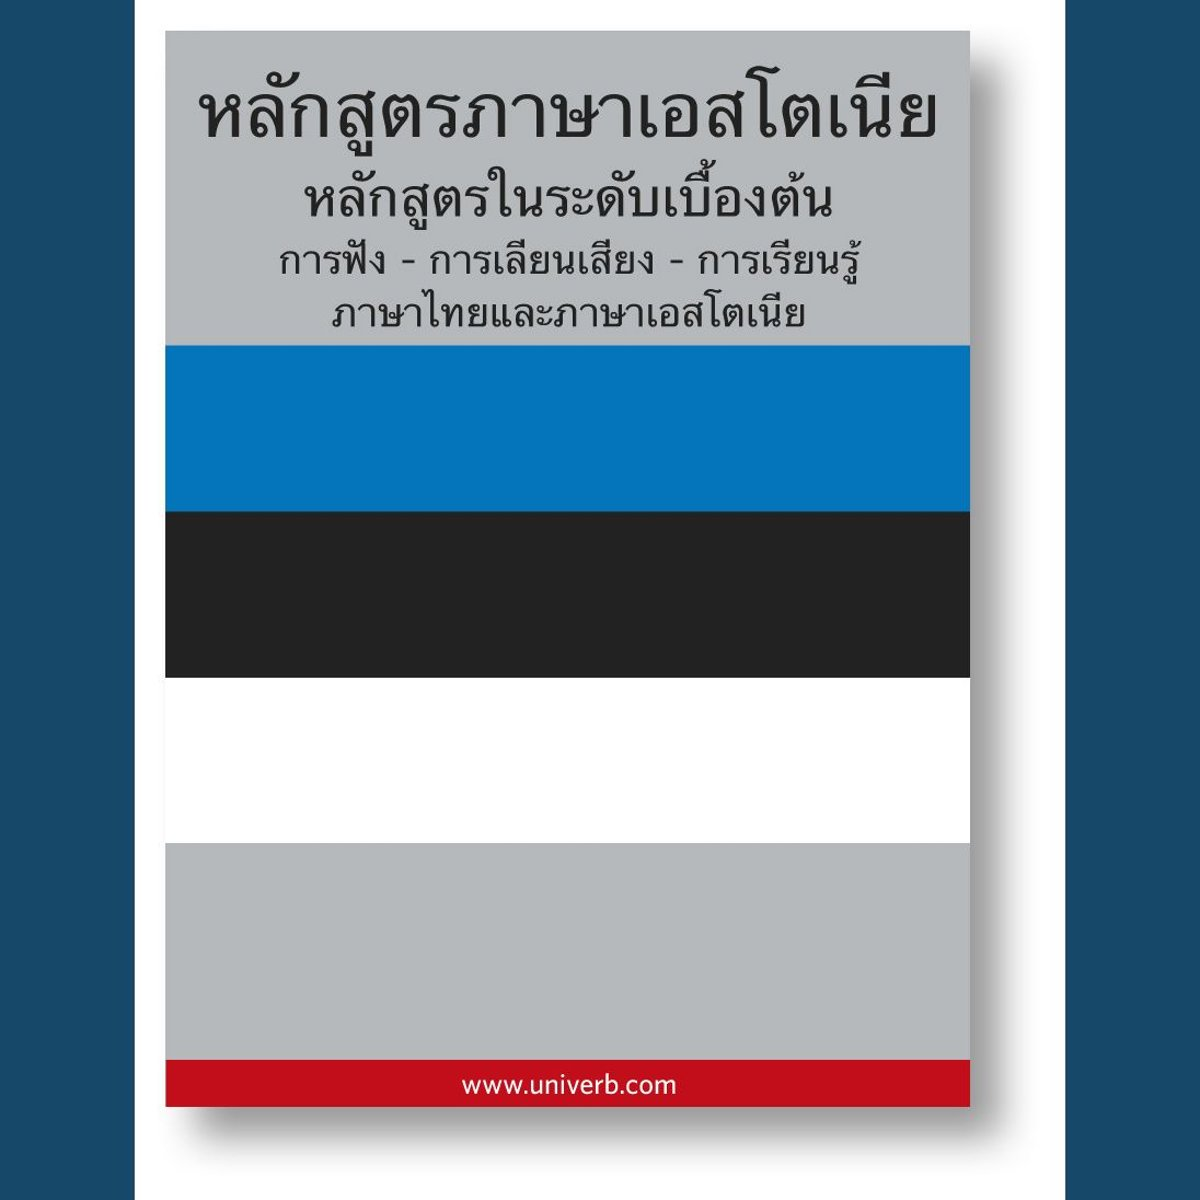 Estonian Course (from Thai)